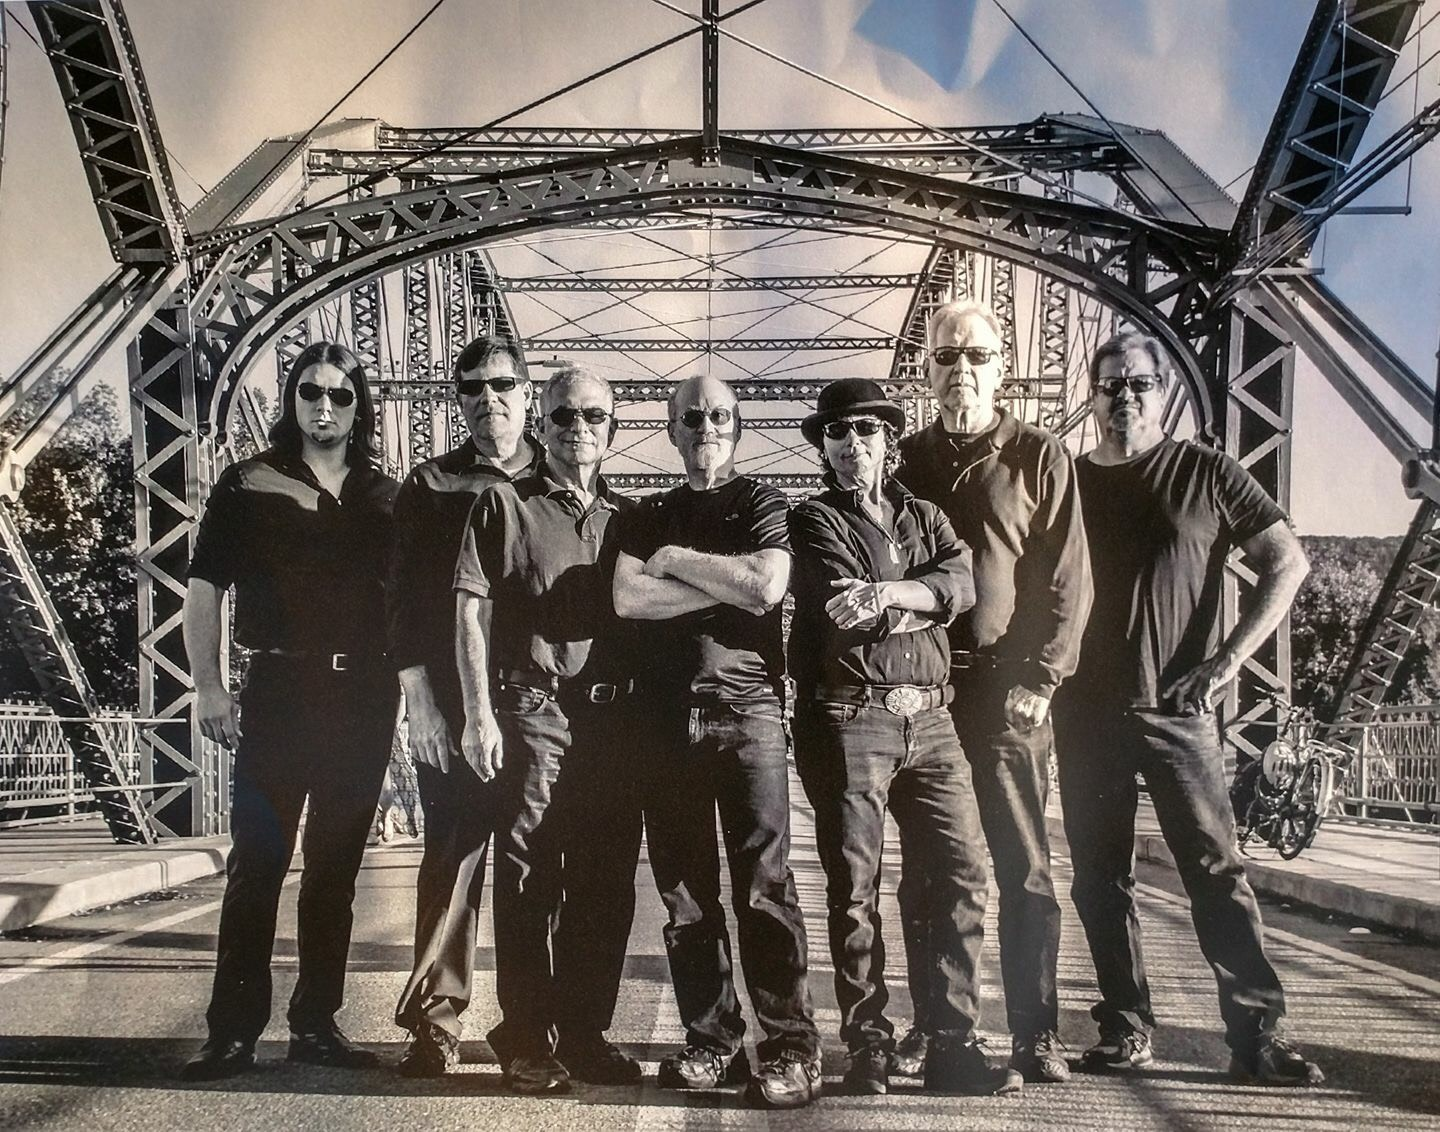 city limits blues rock funk live music band show concert free saturday night stuff to do events no cover the range ithaca downtown commons graduation cornell college ic